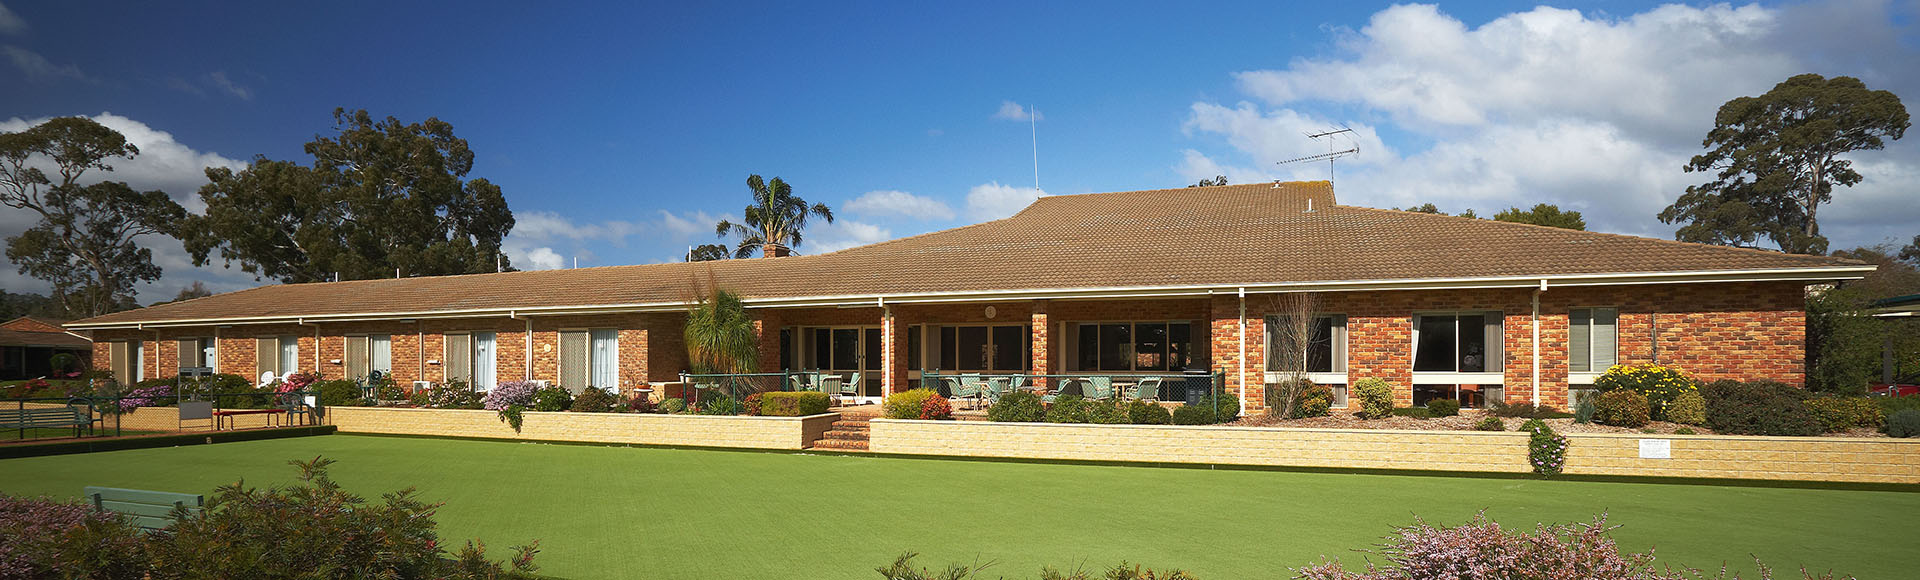 Templestowe Commcentre Bowling Green 1920x580